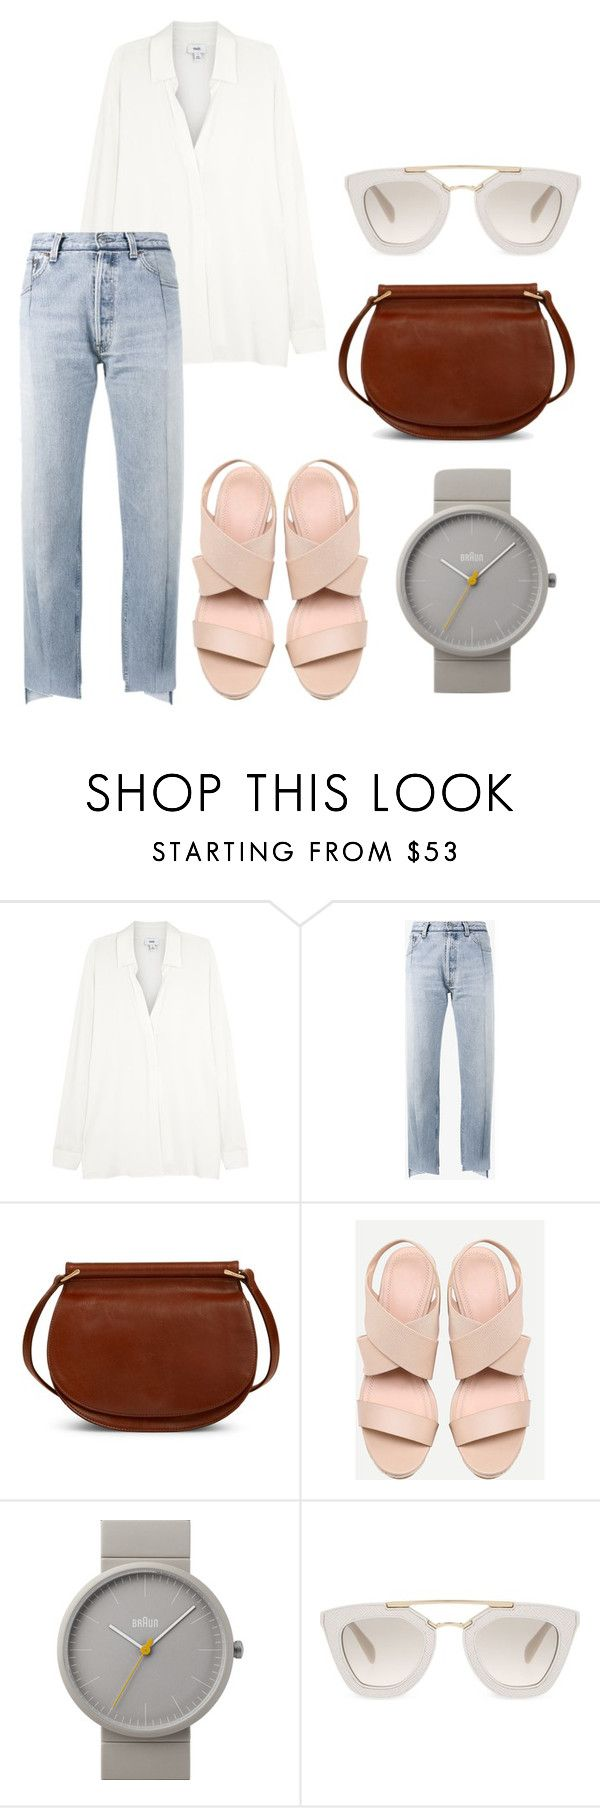 """Jealousy Incarnate Inspired Outfit #Kdrama"" by indirag on Polyvore featuring Vetements, Vera Bradley, Braun and Prada"